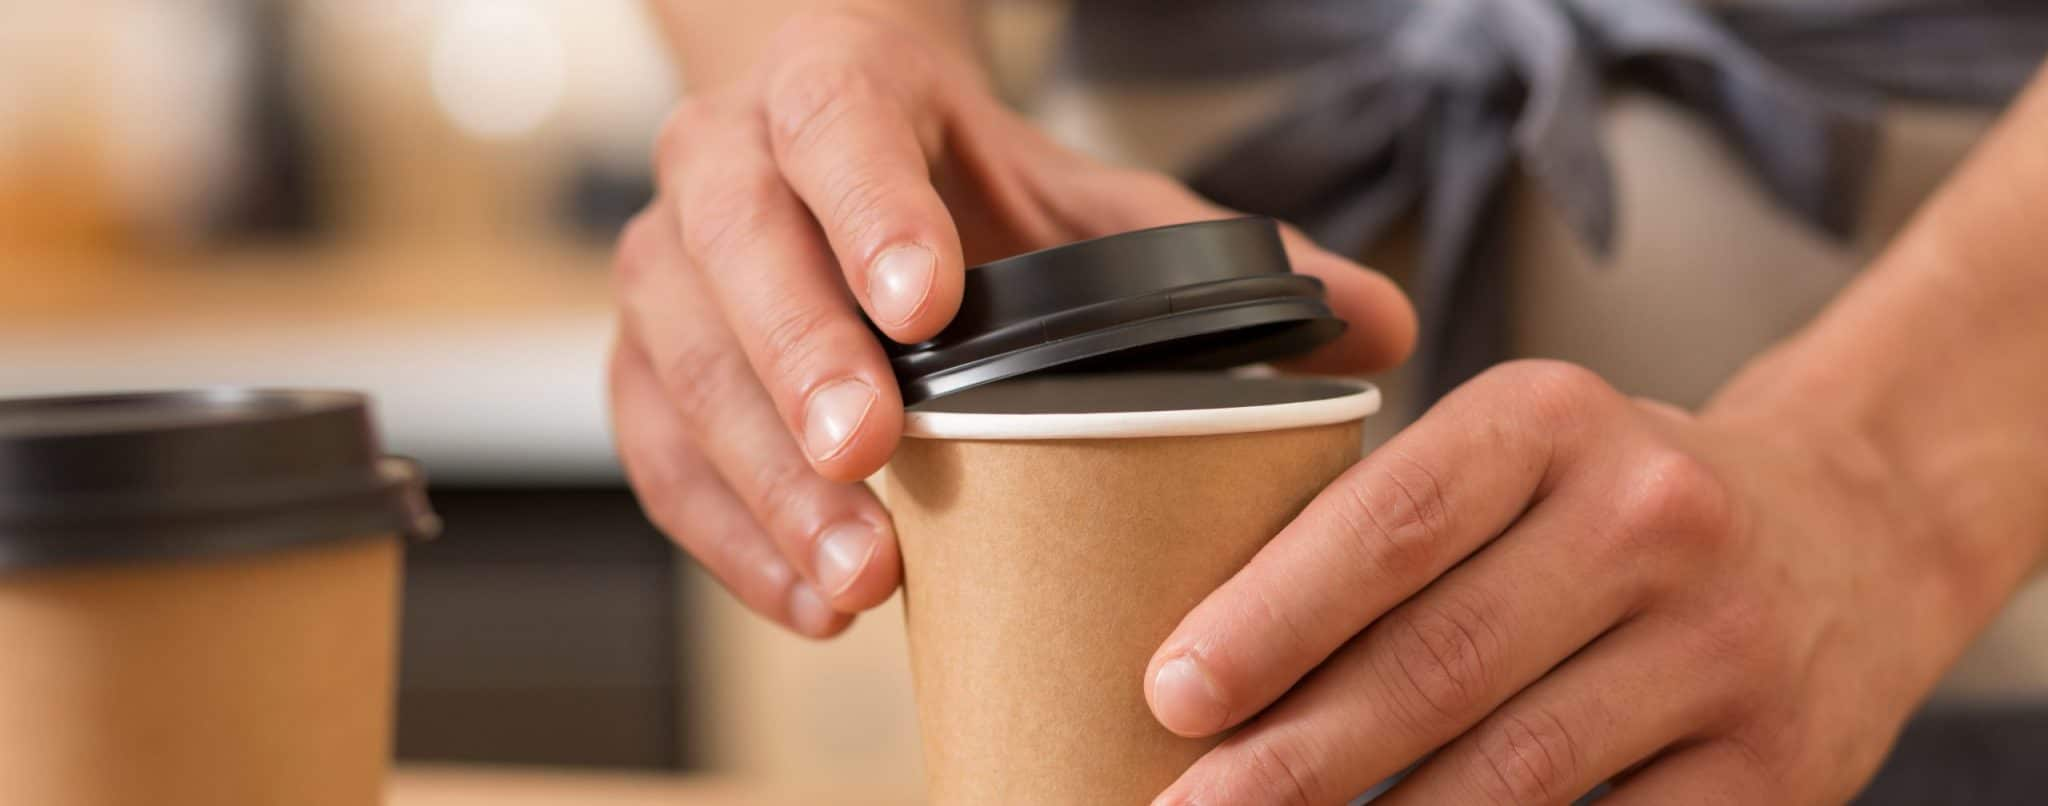 How your daily coffee can make an IMPACT - 2020 - Wattsnext Group